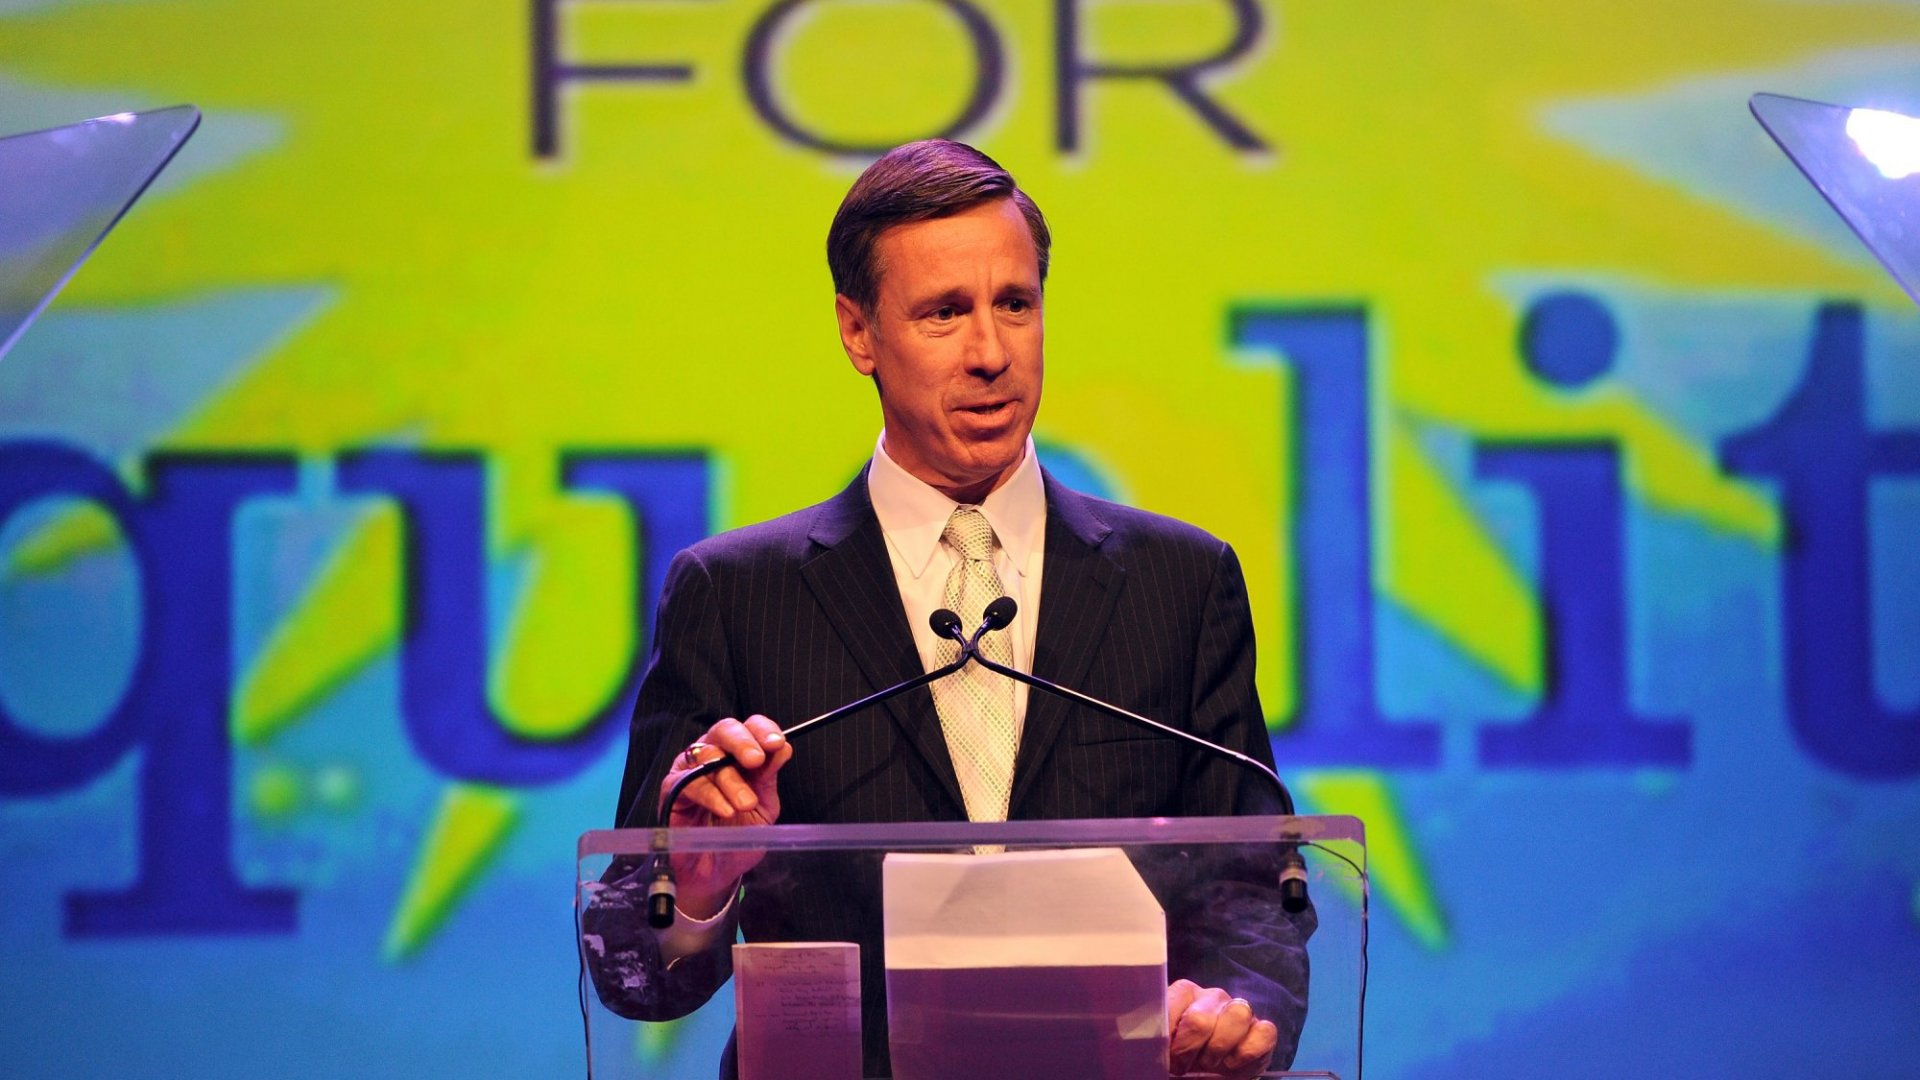 Why the CEO of Marriott Makes LGBT Inclusion a Top Priority